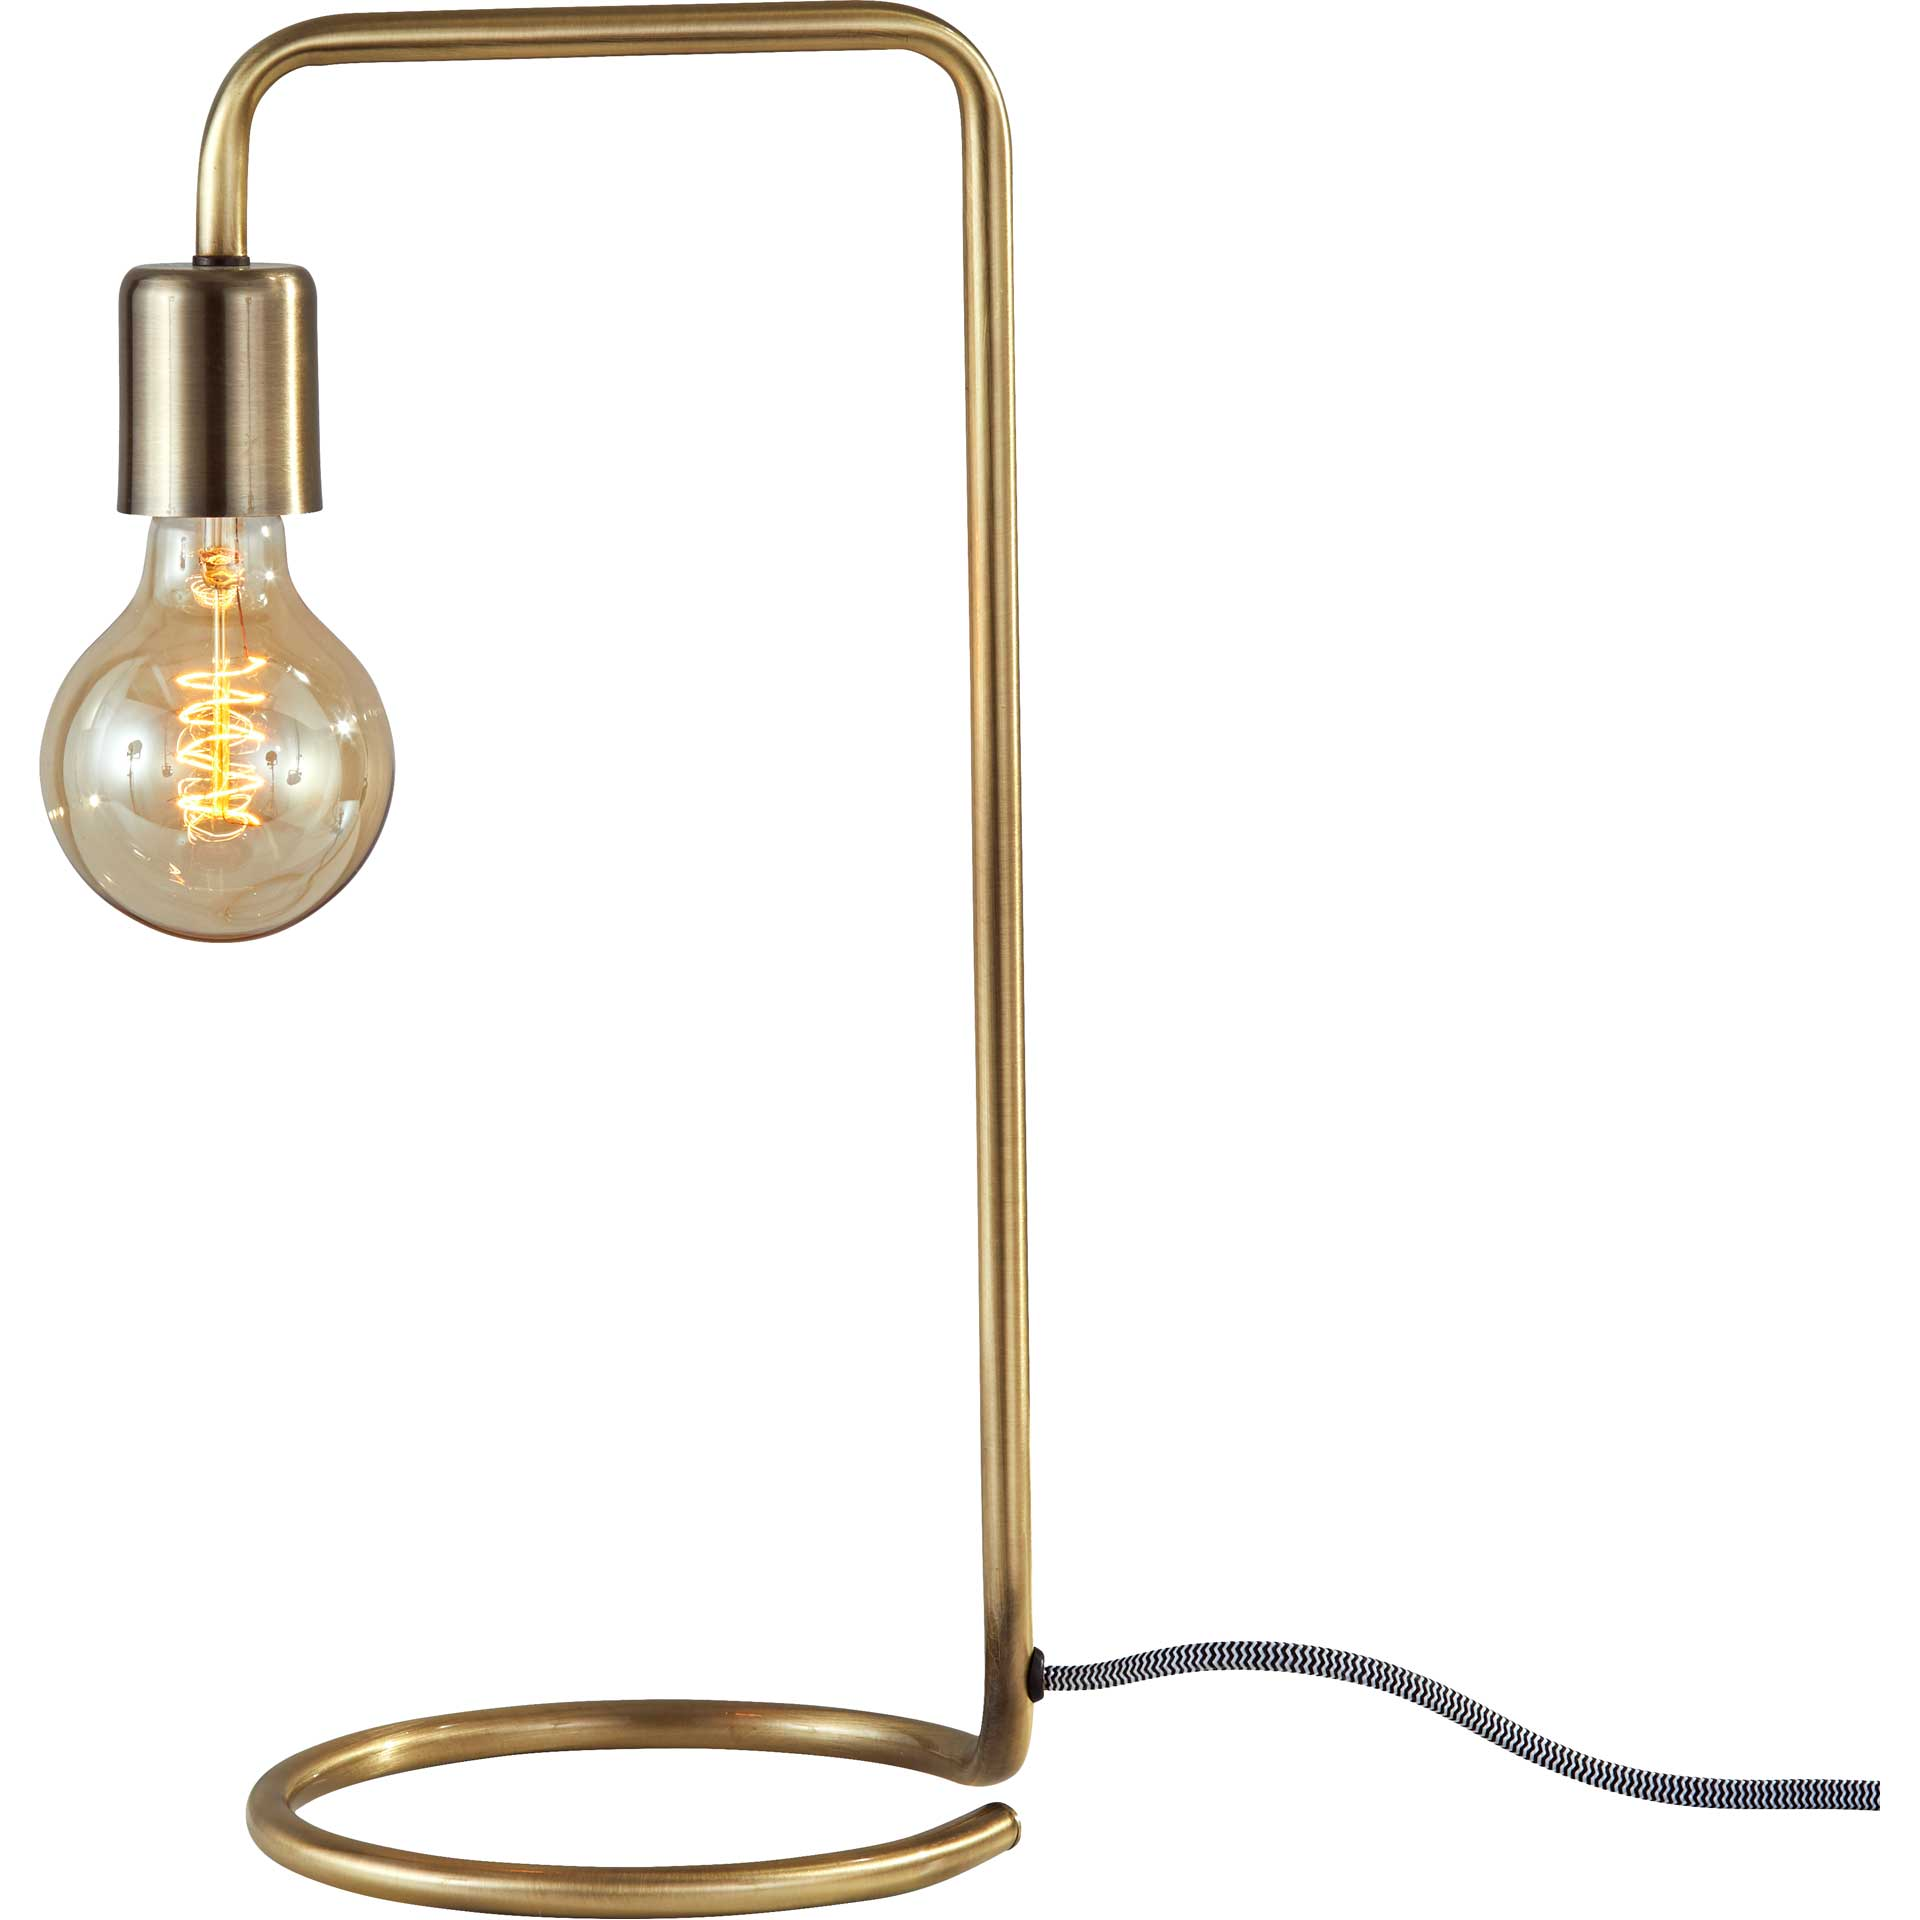 Montgeron Desk Lamp Antique Brass